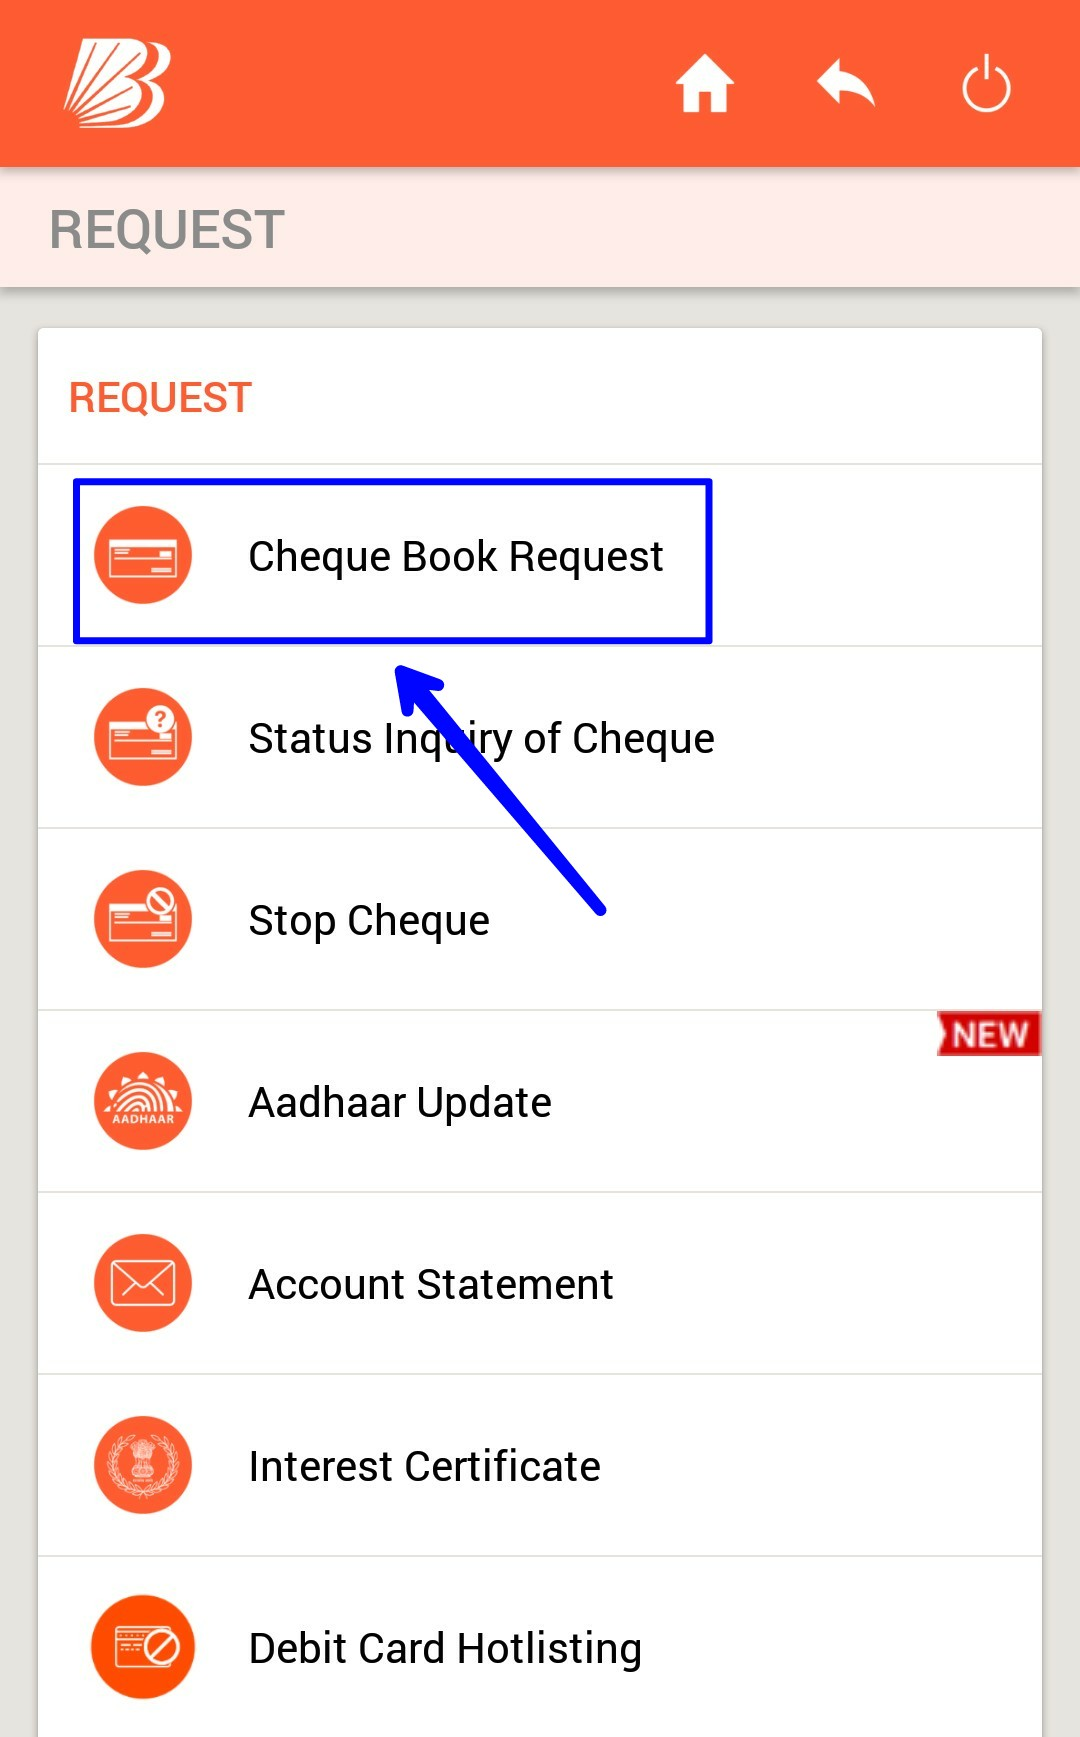 Bank of baroda check book online order kaise kare